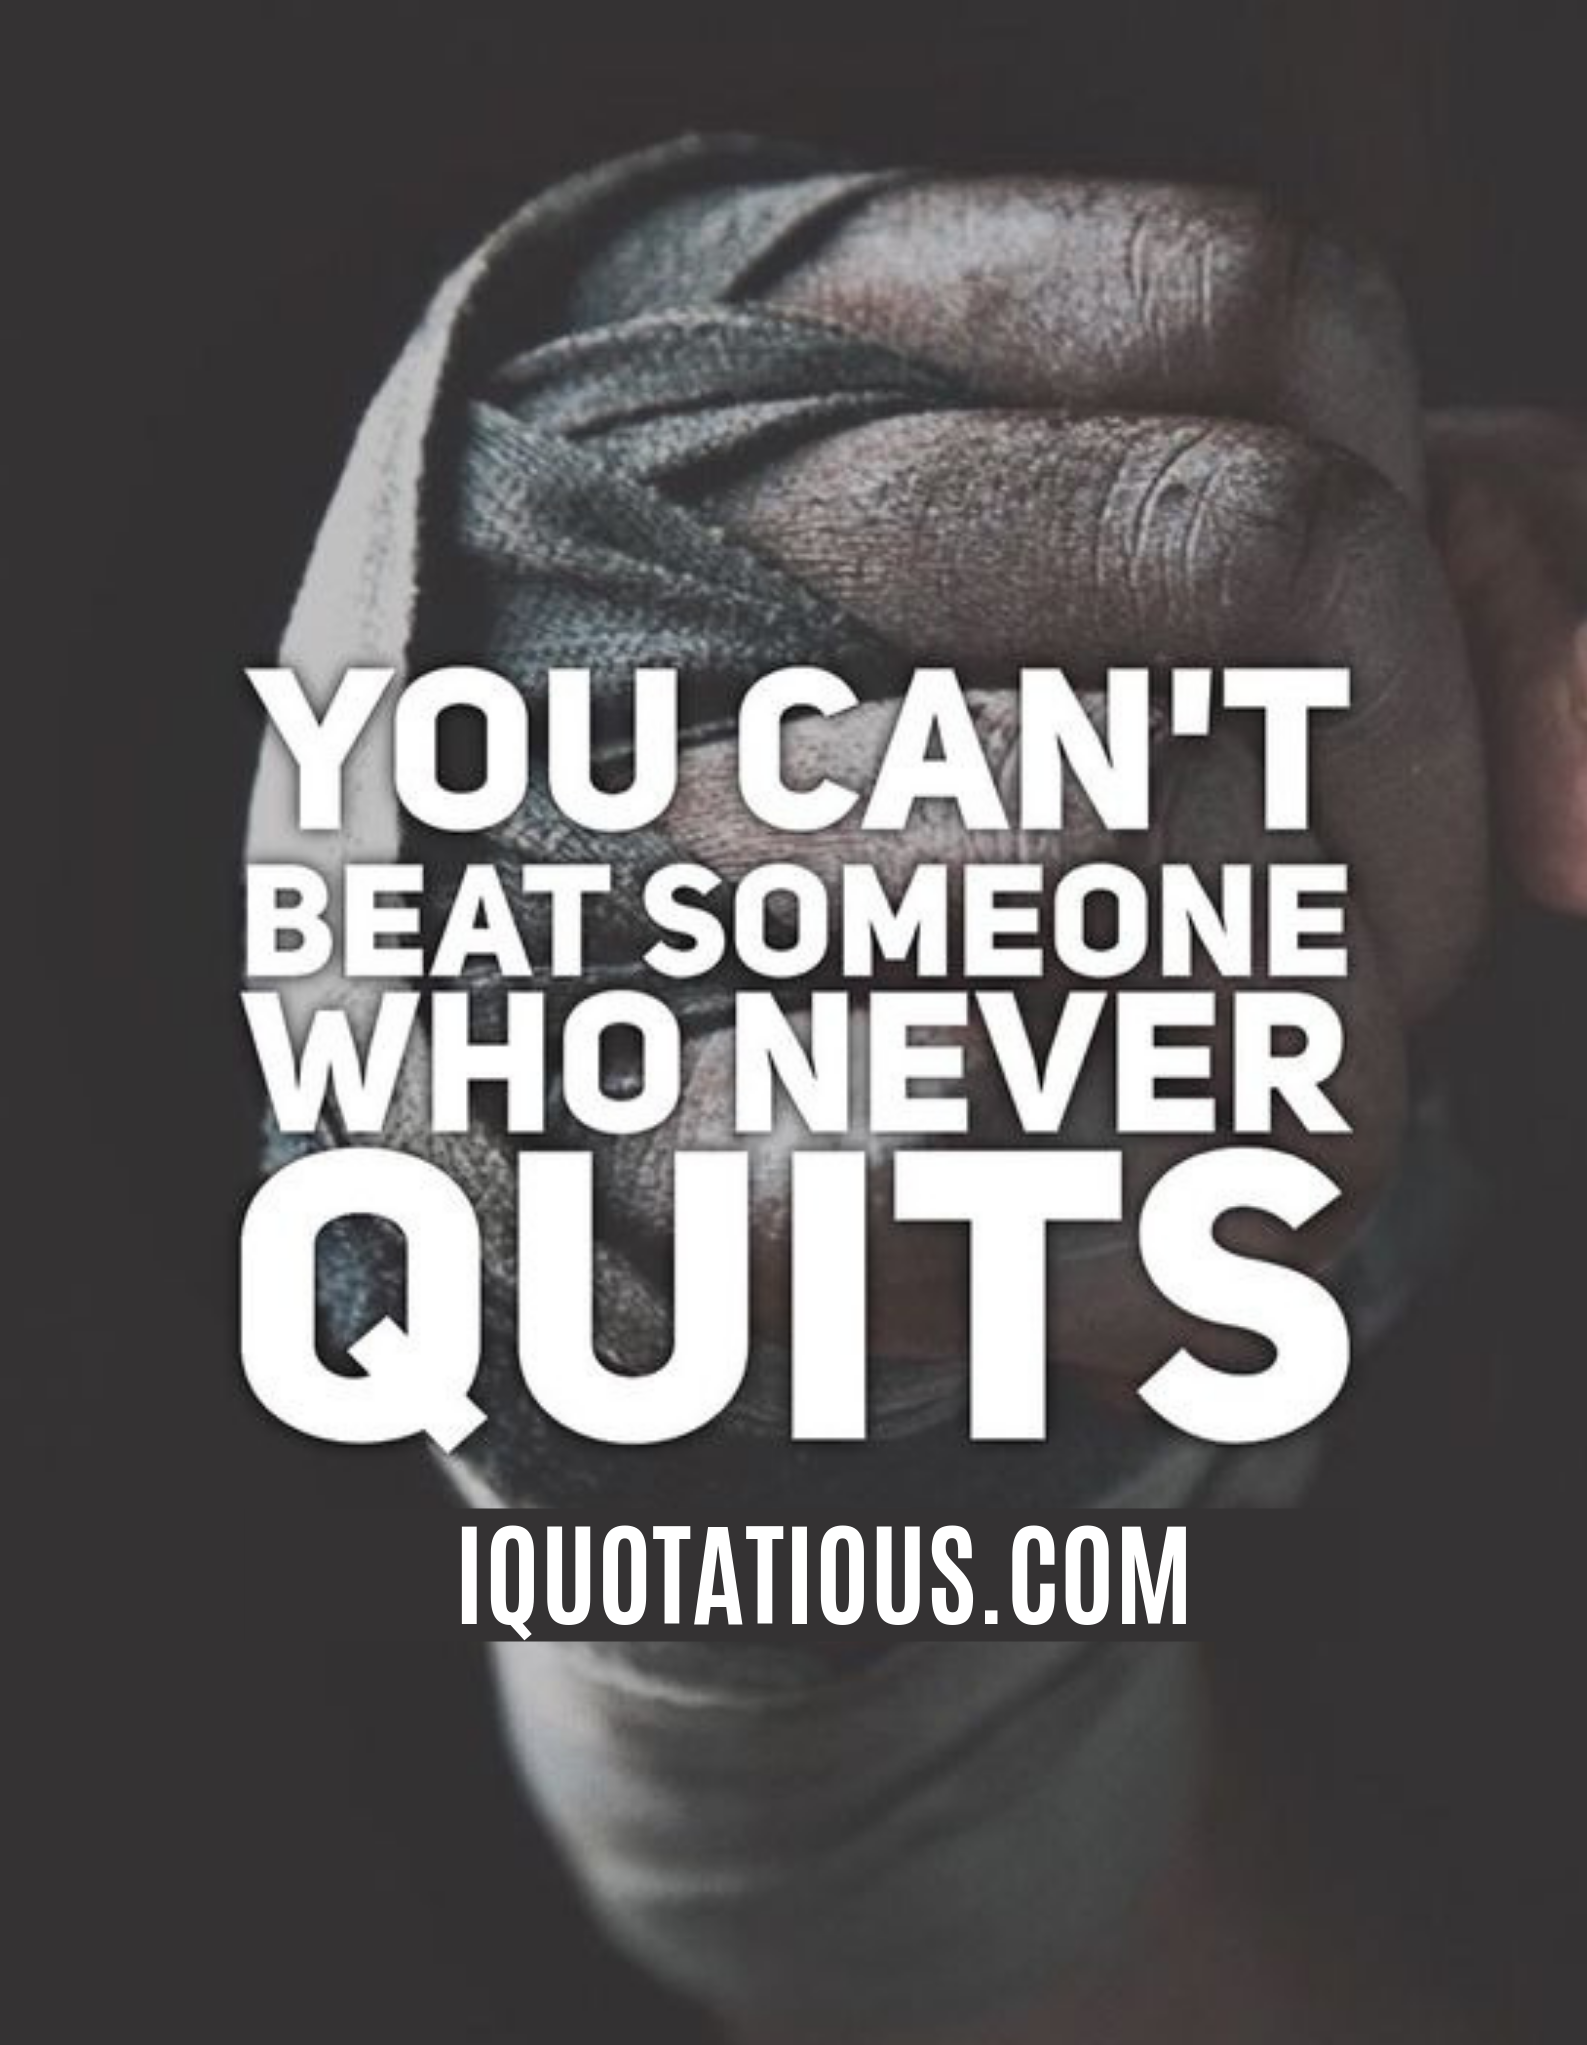 You can't beat someone who never quits.